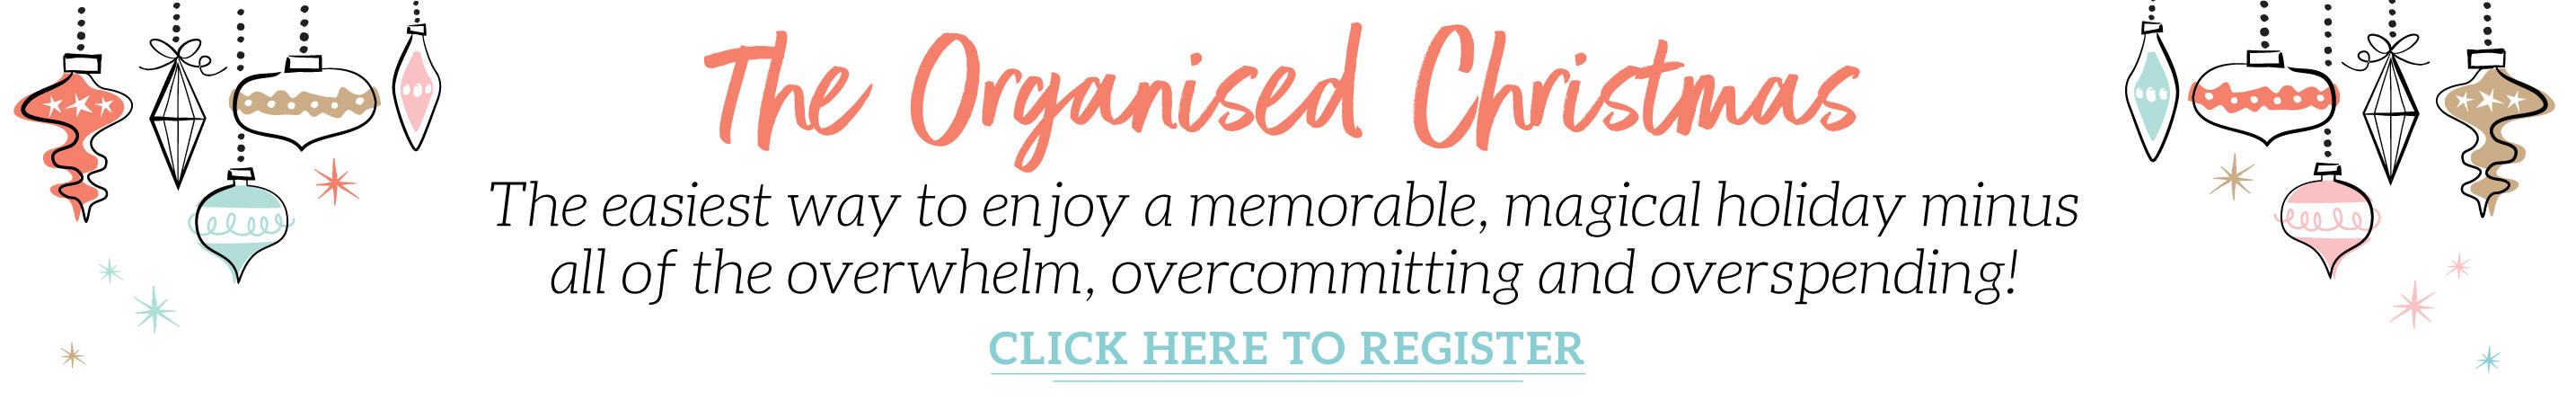 The Organised Christmas eCourse_register-now